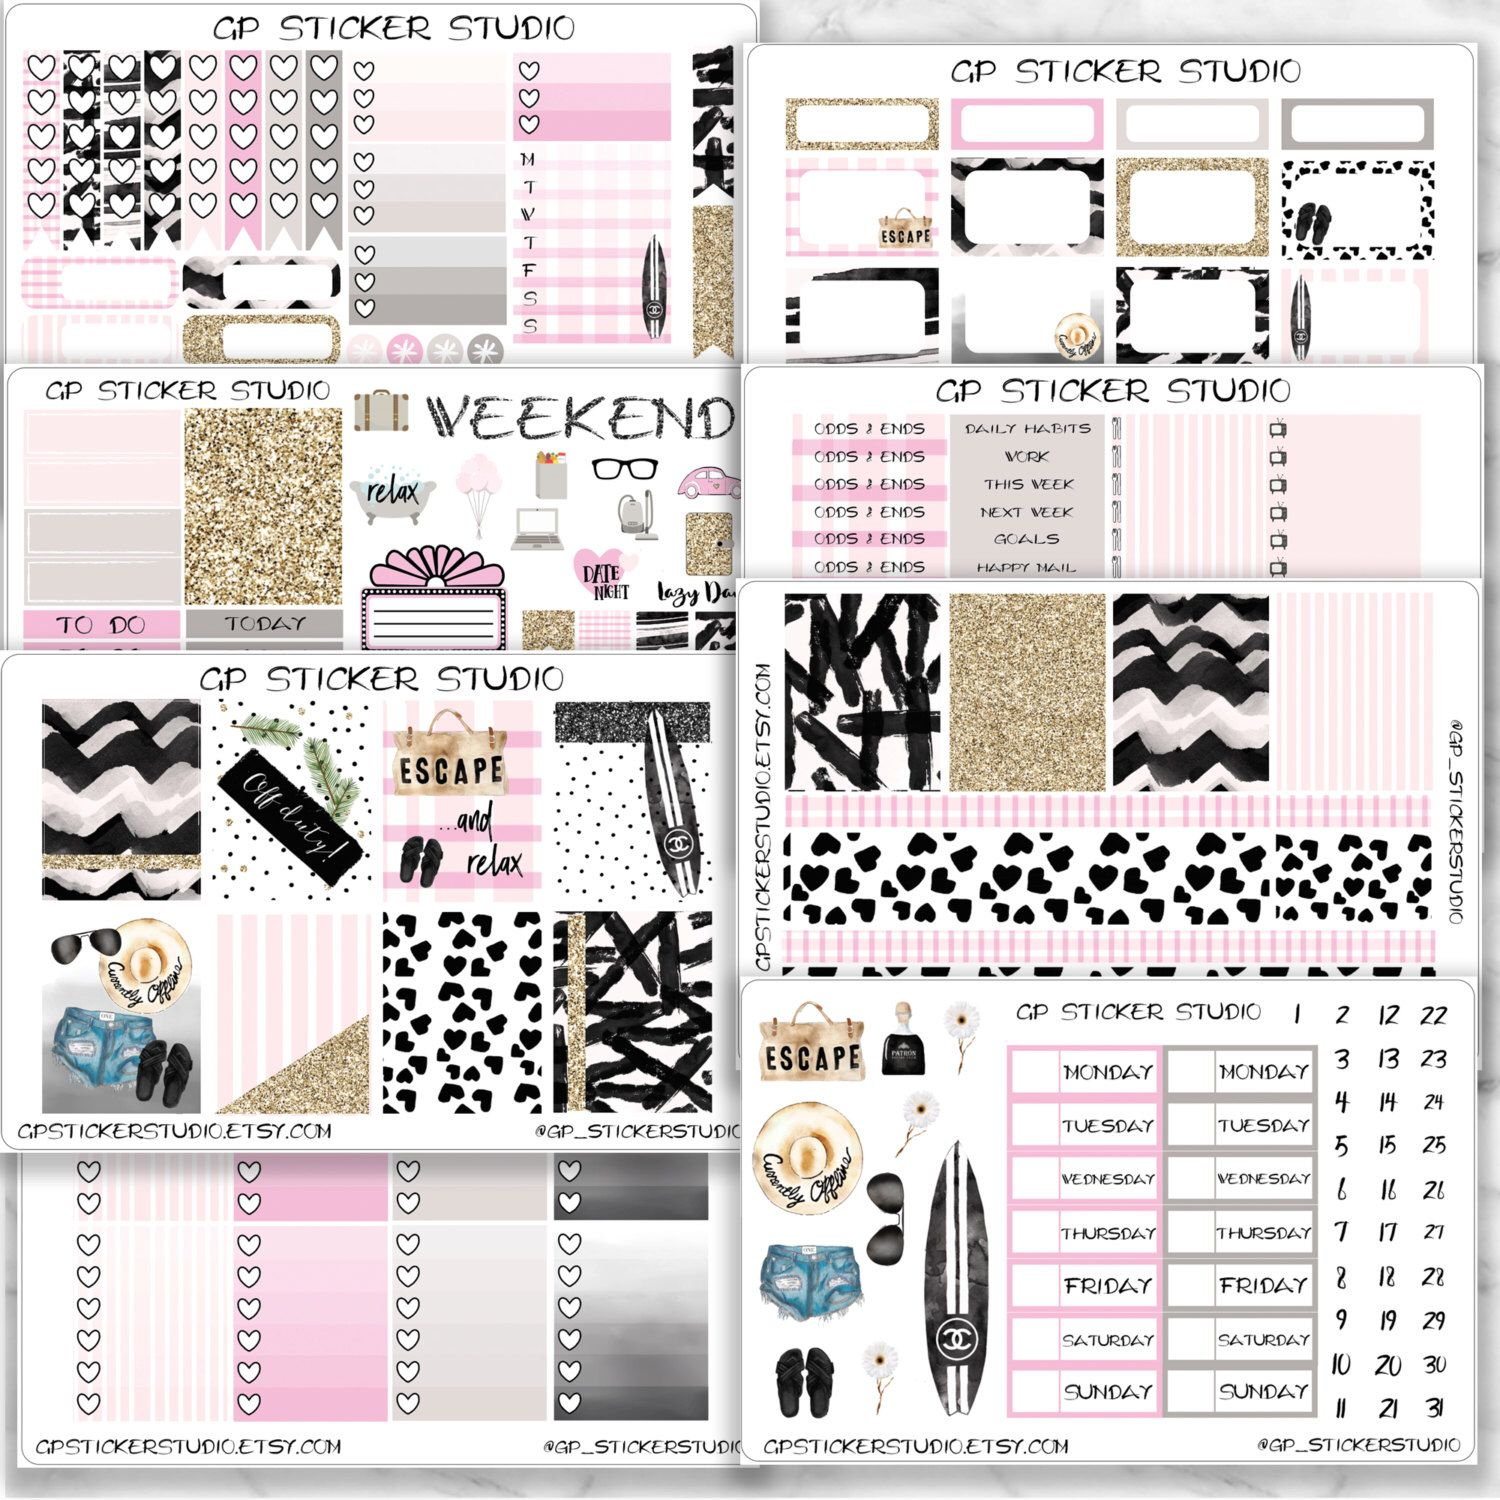 ESCAPE COLLECTION Planner Sticker Kit for your Erin Condren Vertical, Happy Planner, Kate Spade, Filofax, Kikki K and More by GPStickerStudio on Etsy https://www.etsy.com/listing/480714807/escape-collection-planner-sticker-kit